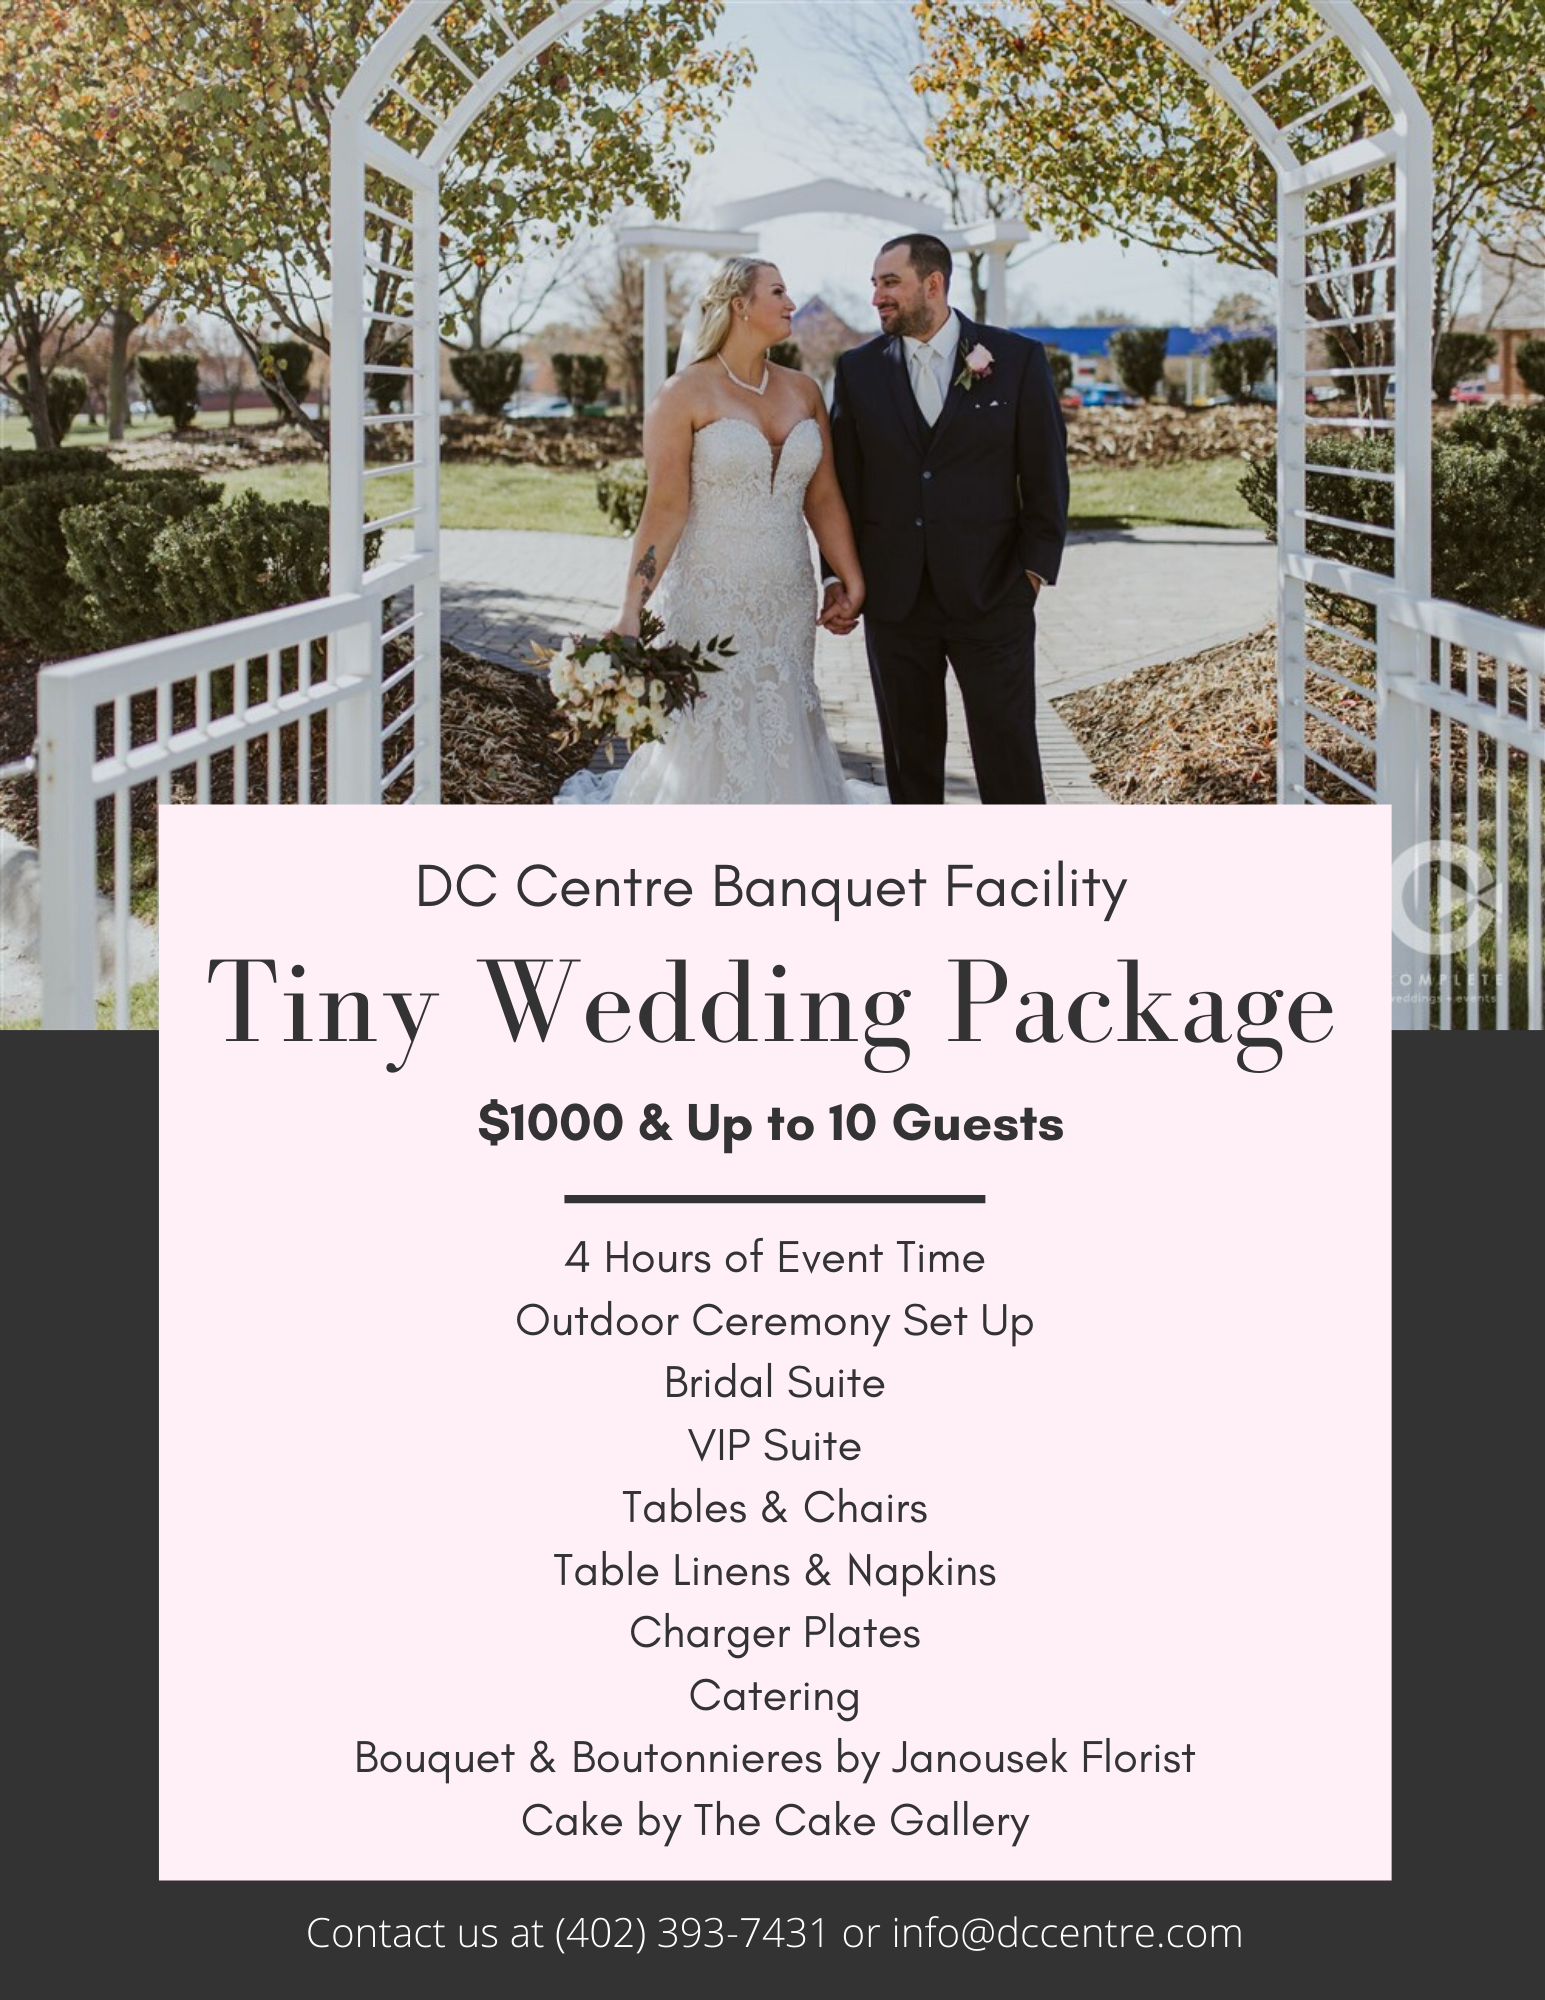 Tiny Wedding Package at DC Centre